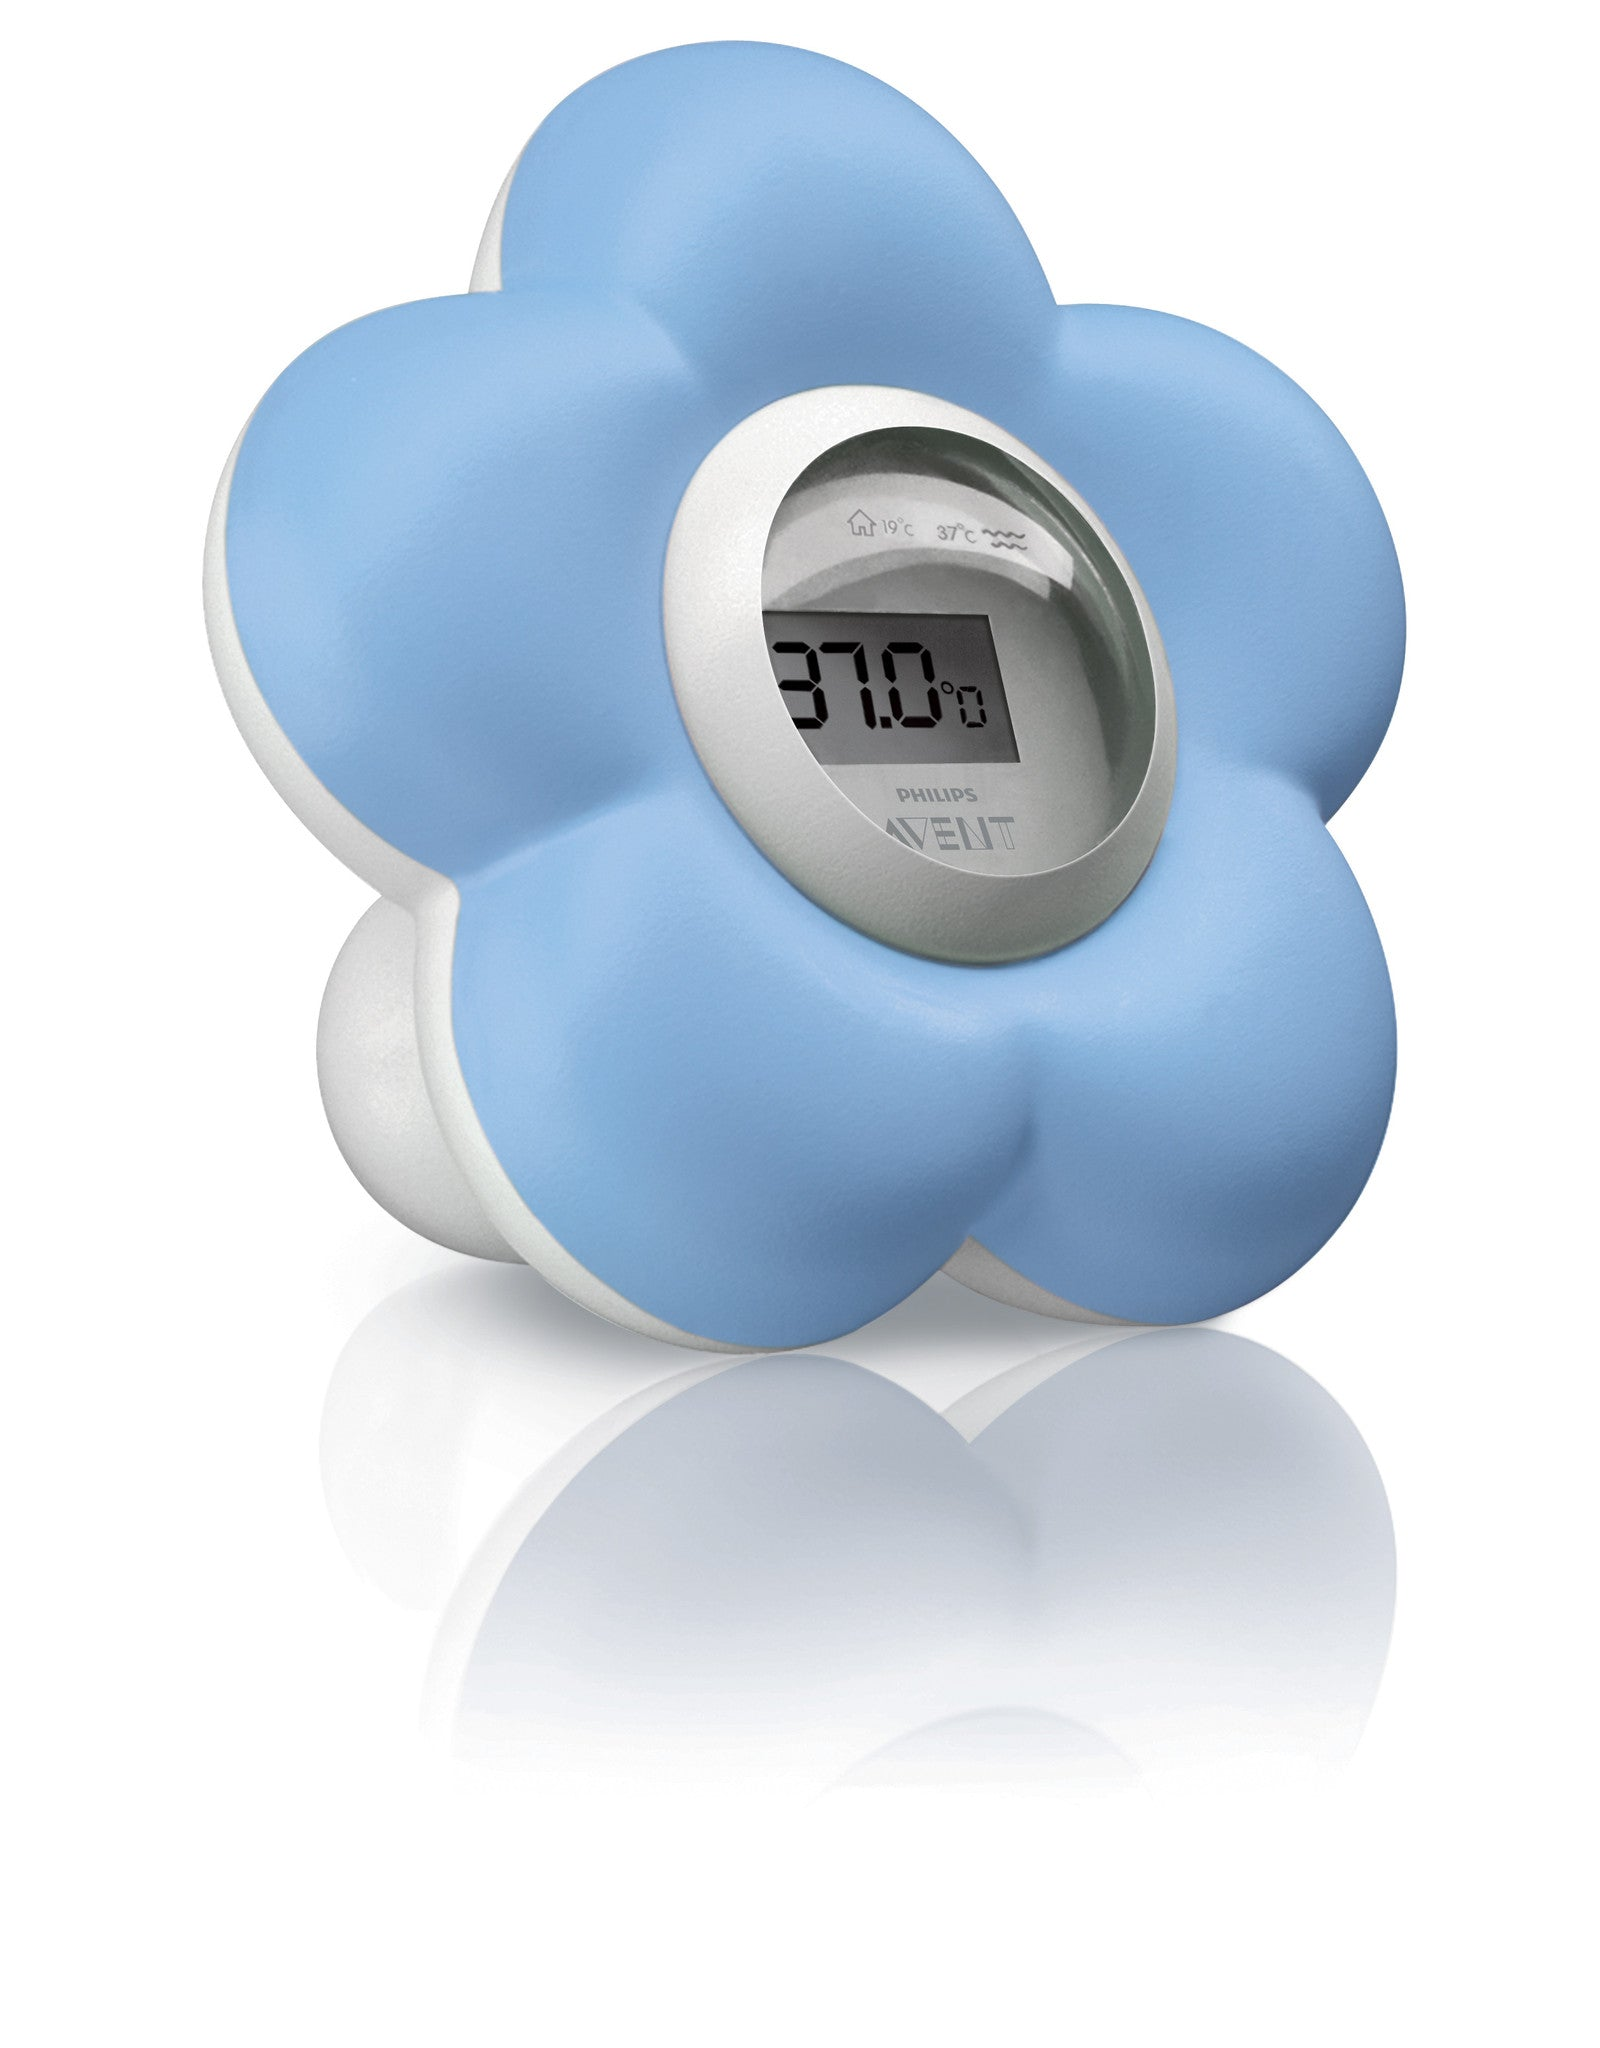 Philips AVENT Digital Bath & Room Thermometer | BabiesAfrica.com